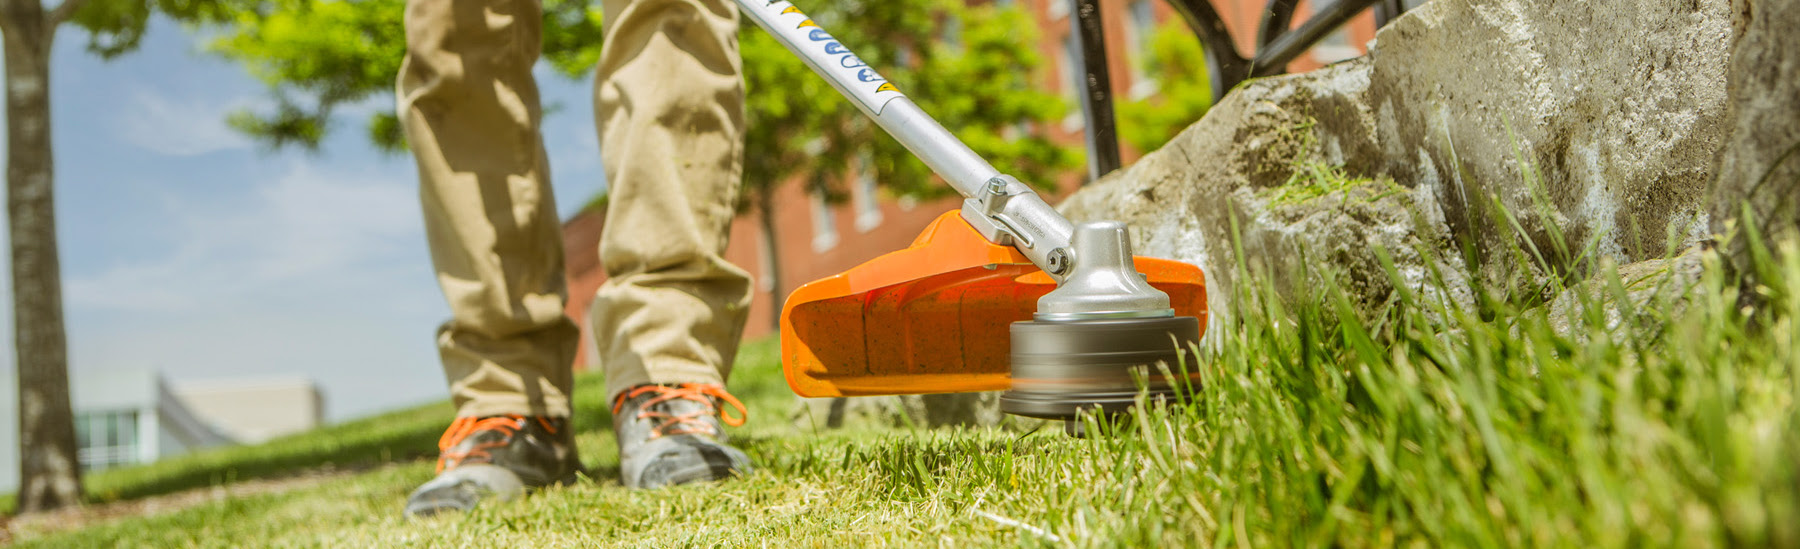 How to Start or Unflood Your STIHL Trimmer